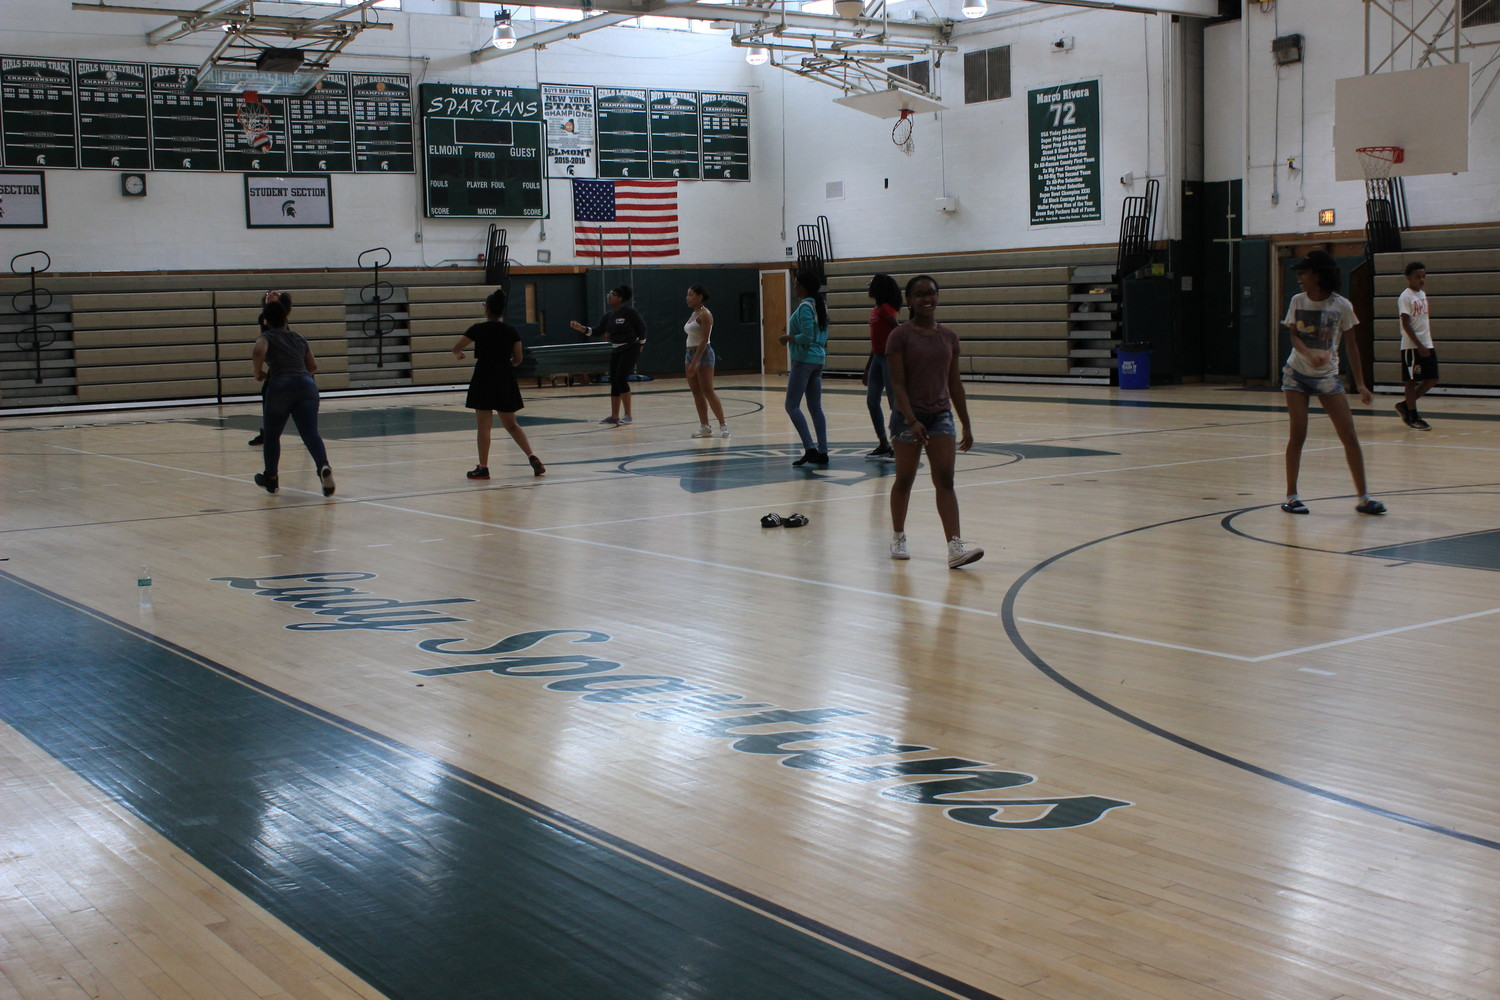 One of the major updates that has taken place over the years has been its gymnasium. The new gym has more space, flooring and changes to its entrance. Children played volleyball on the new floor.